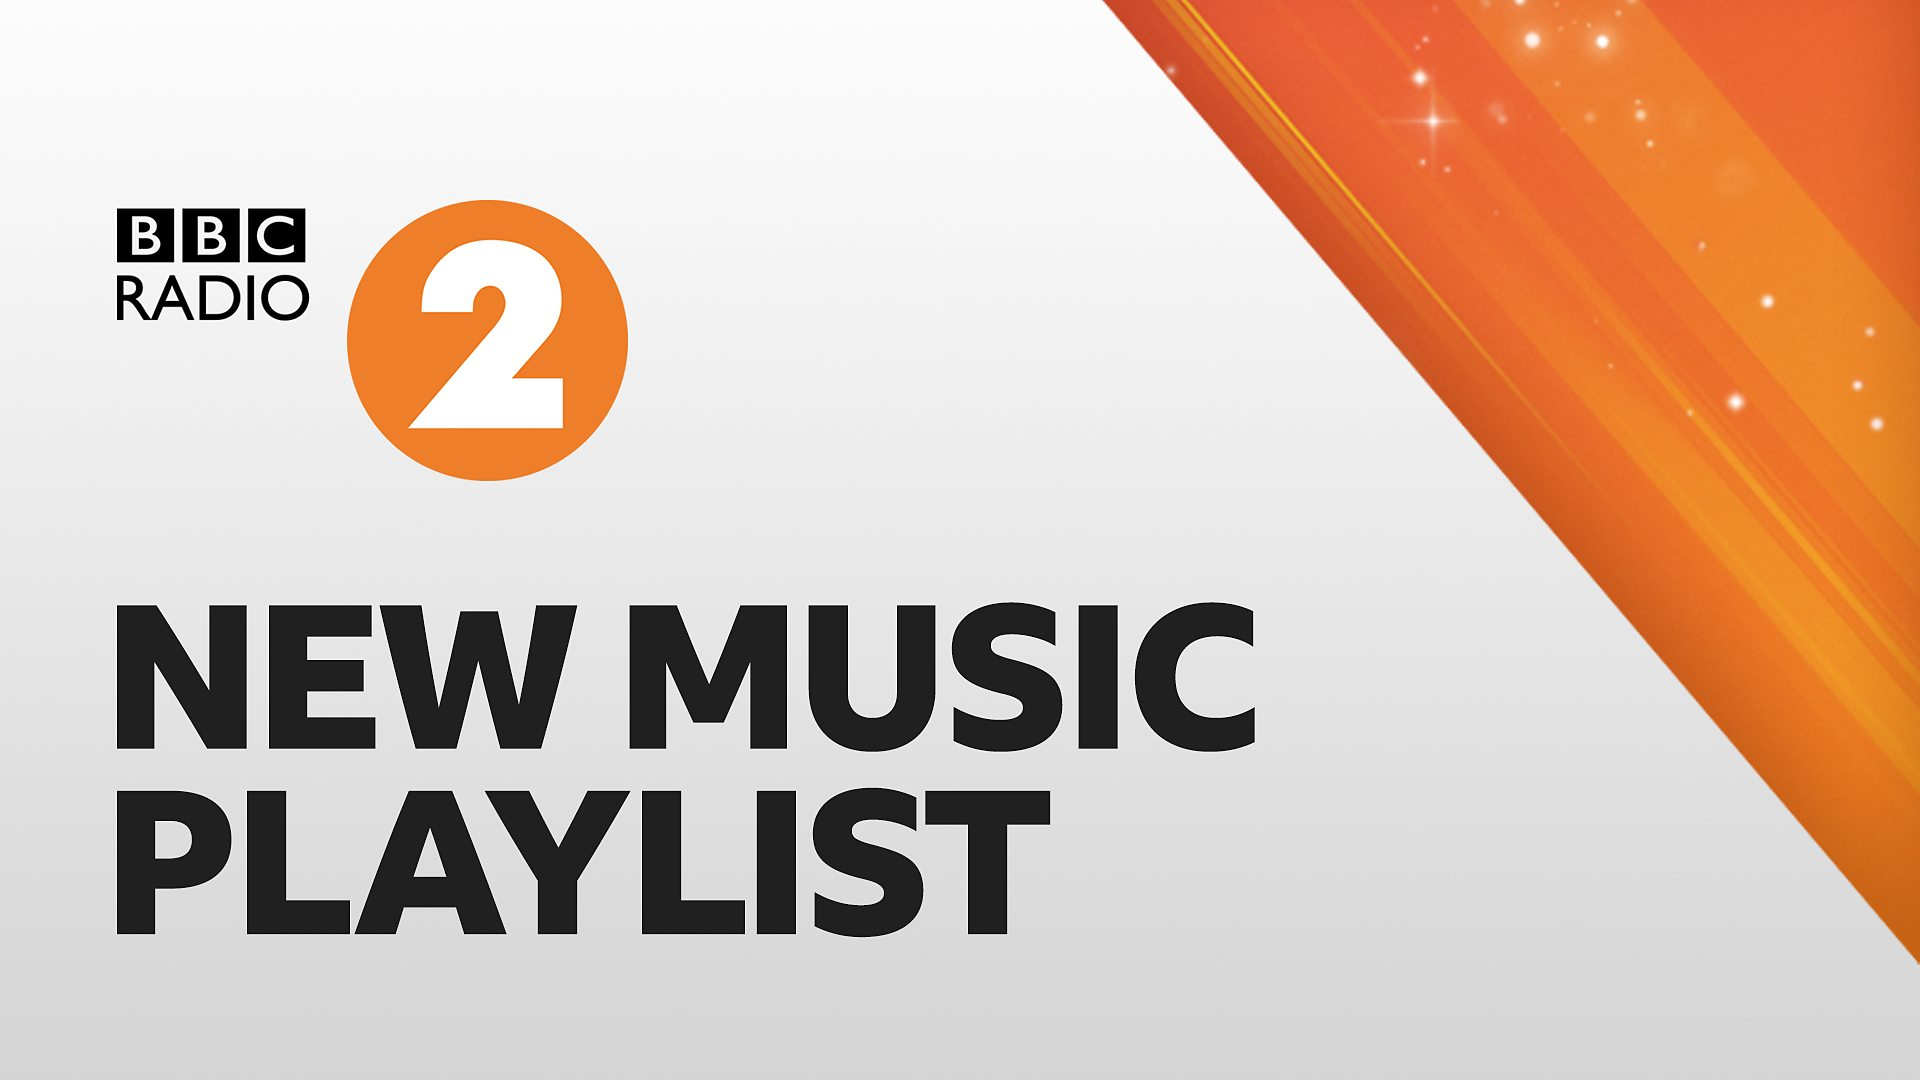 BBC - Radio 2 New Music Playlist